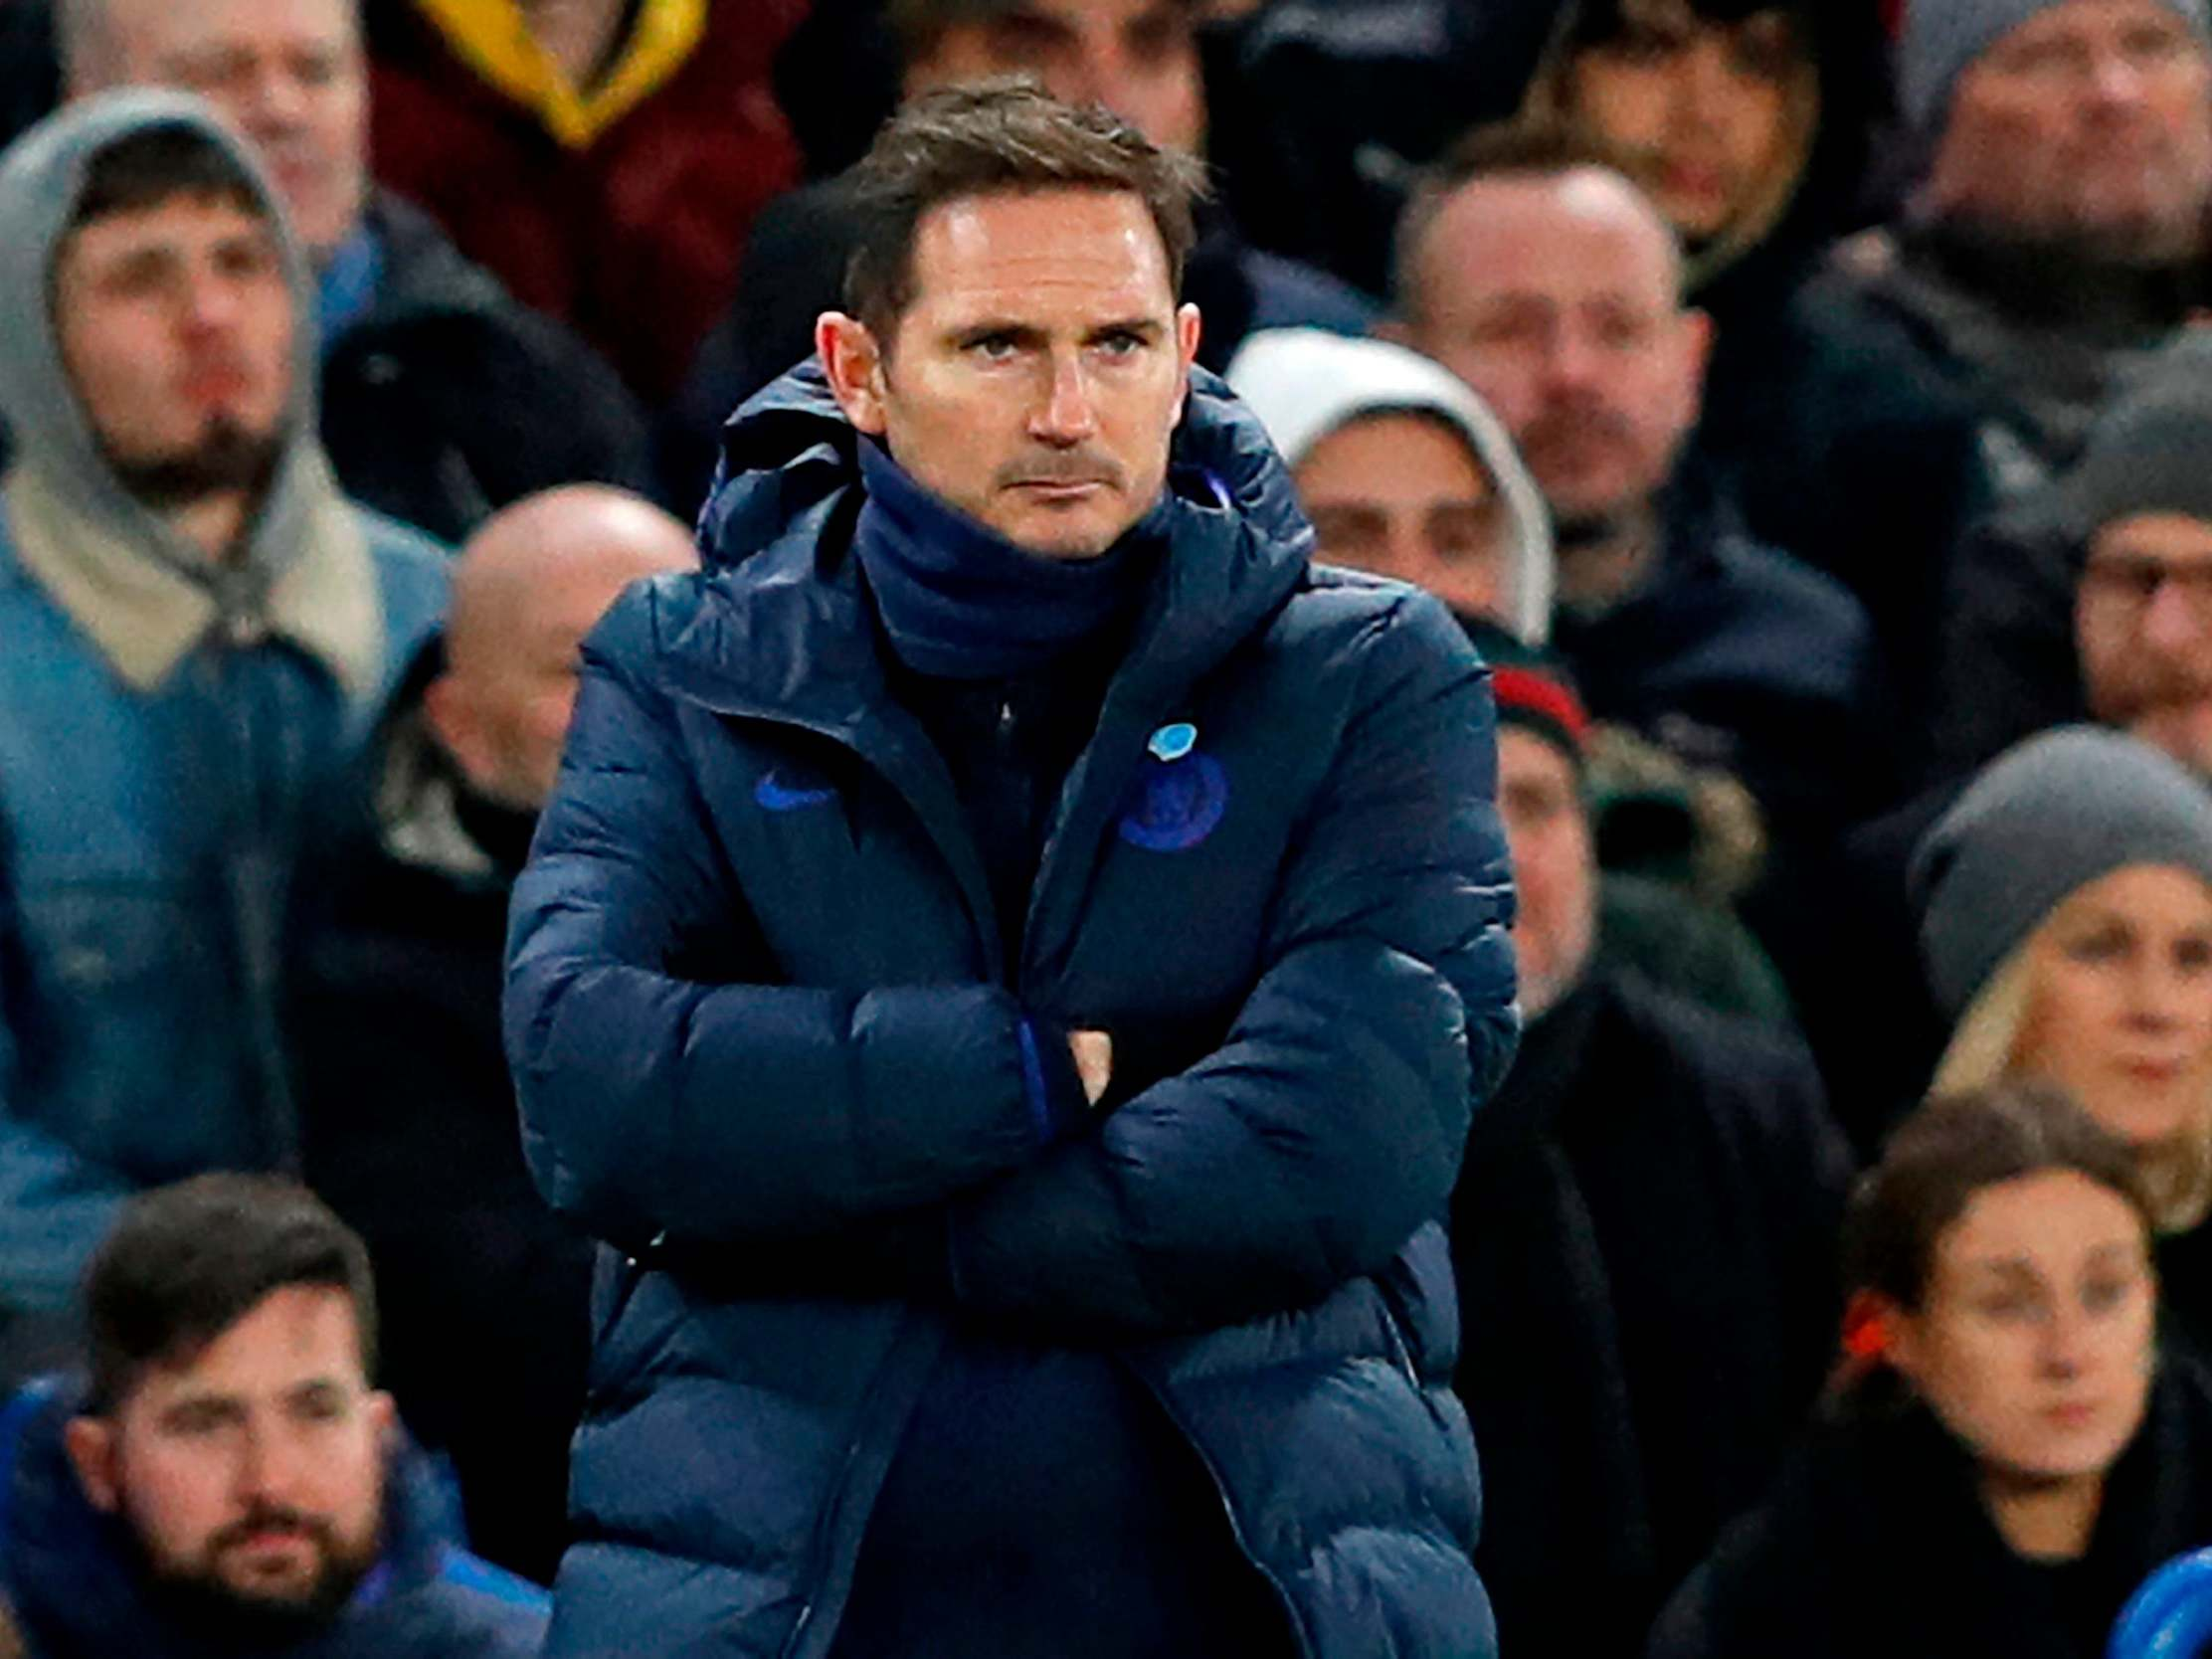 Frank Lampard says Harry Maguire should have seen red as Chelsea rage over loss